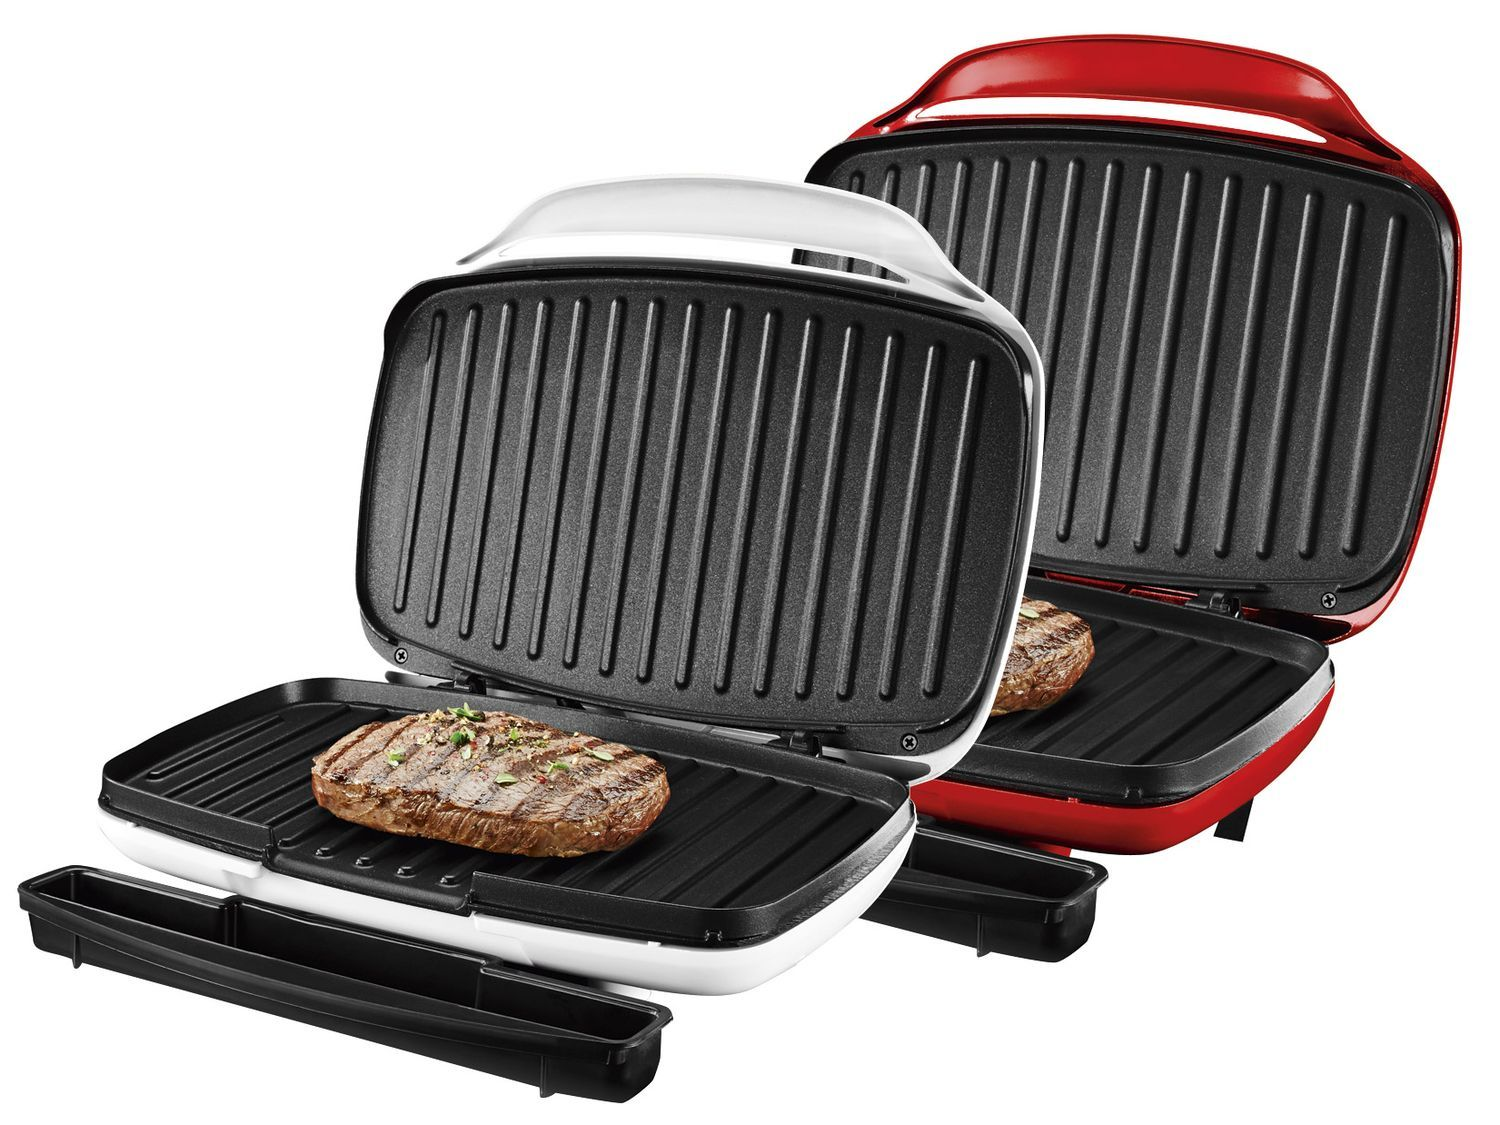 ... Silvercrest Kitchen Tools 3-in-1 Contact Grill